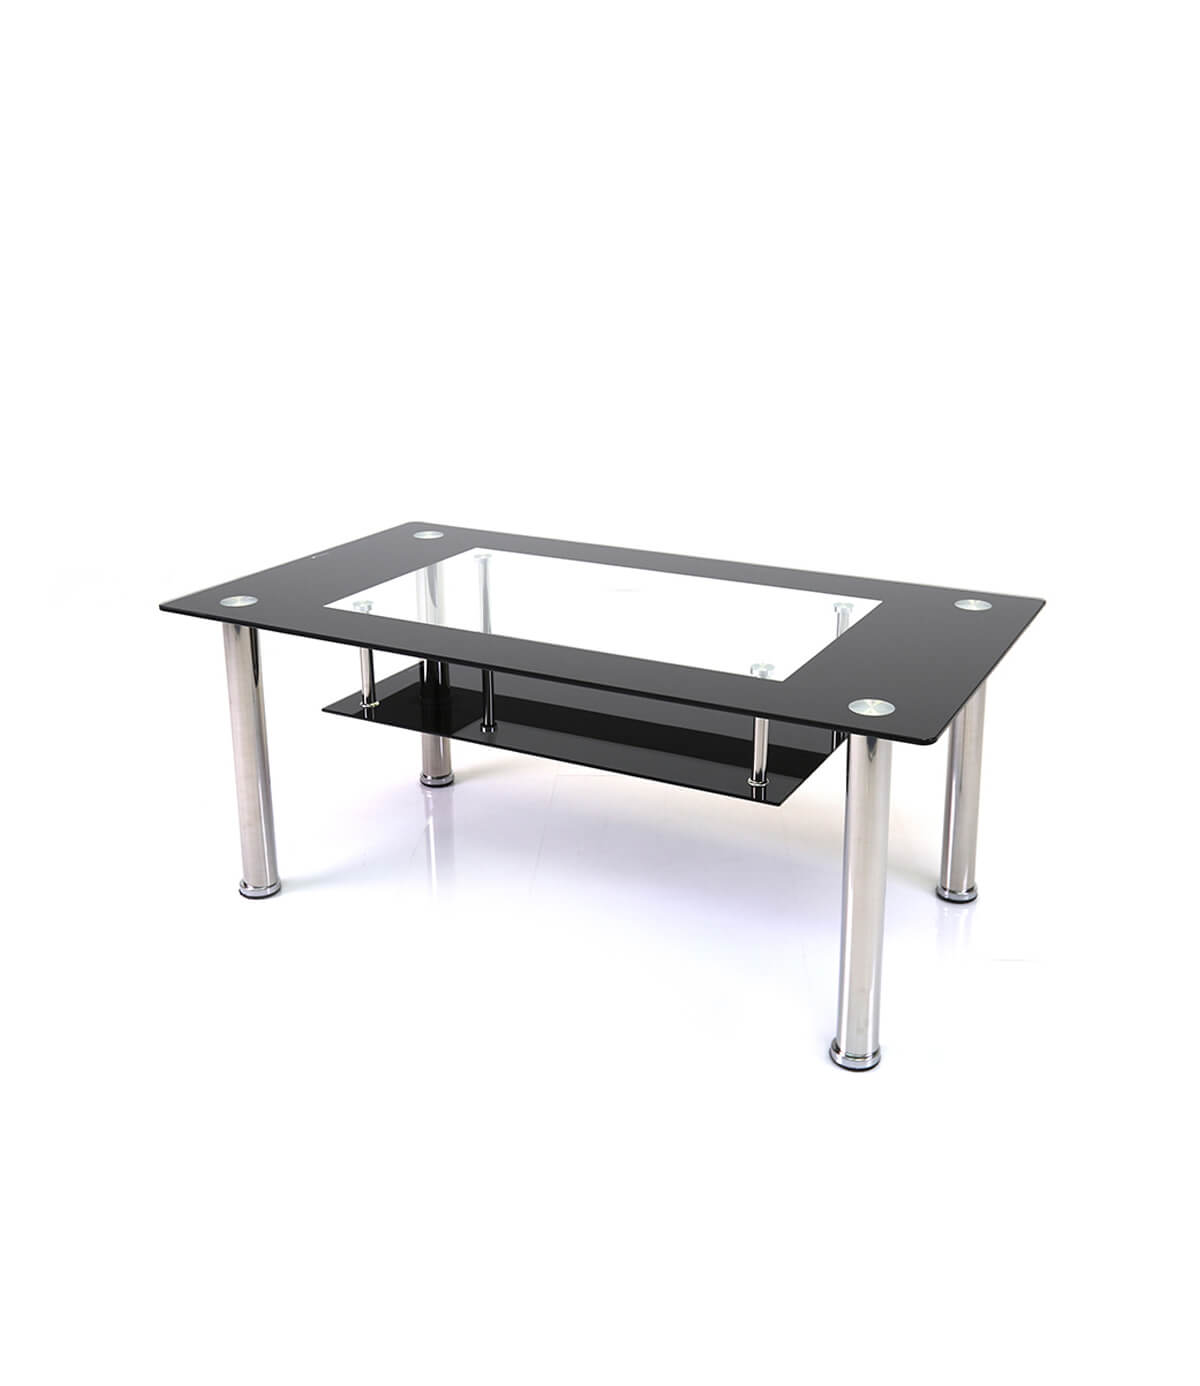 Manchester furniture supplies for Rectangular coffee table with glass top